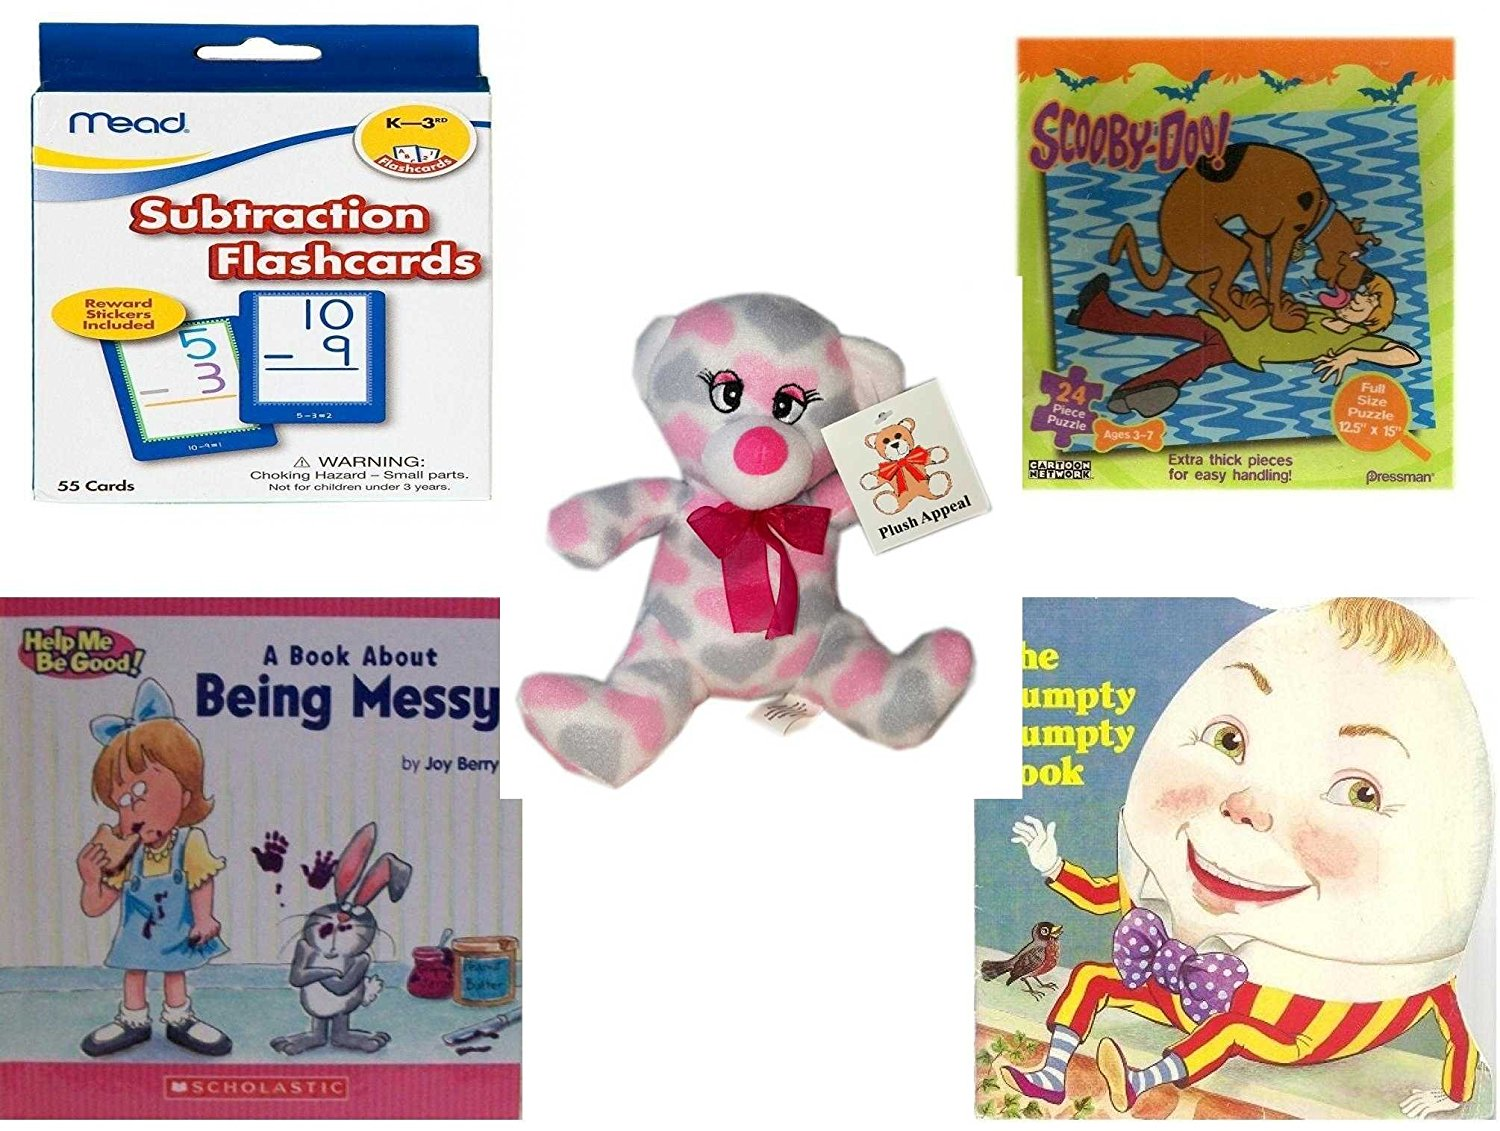 """Children's Gift Bundle - Ages 3-5 [5 Piece] - Mead Flashcards Subtraction Grades K-3 - Scooby Doo & Shaggy 24 Piece Puzzle Toy - Plush Appeal Pretty Pink and Purple Hearts Bear Plush 7"""" - A Book abo"""